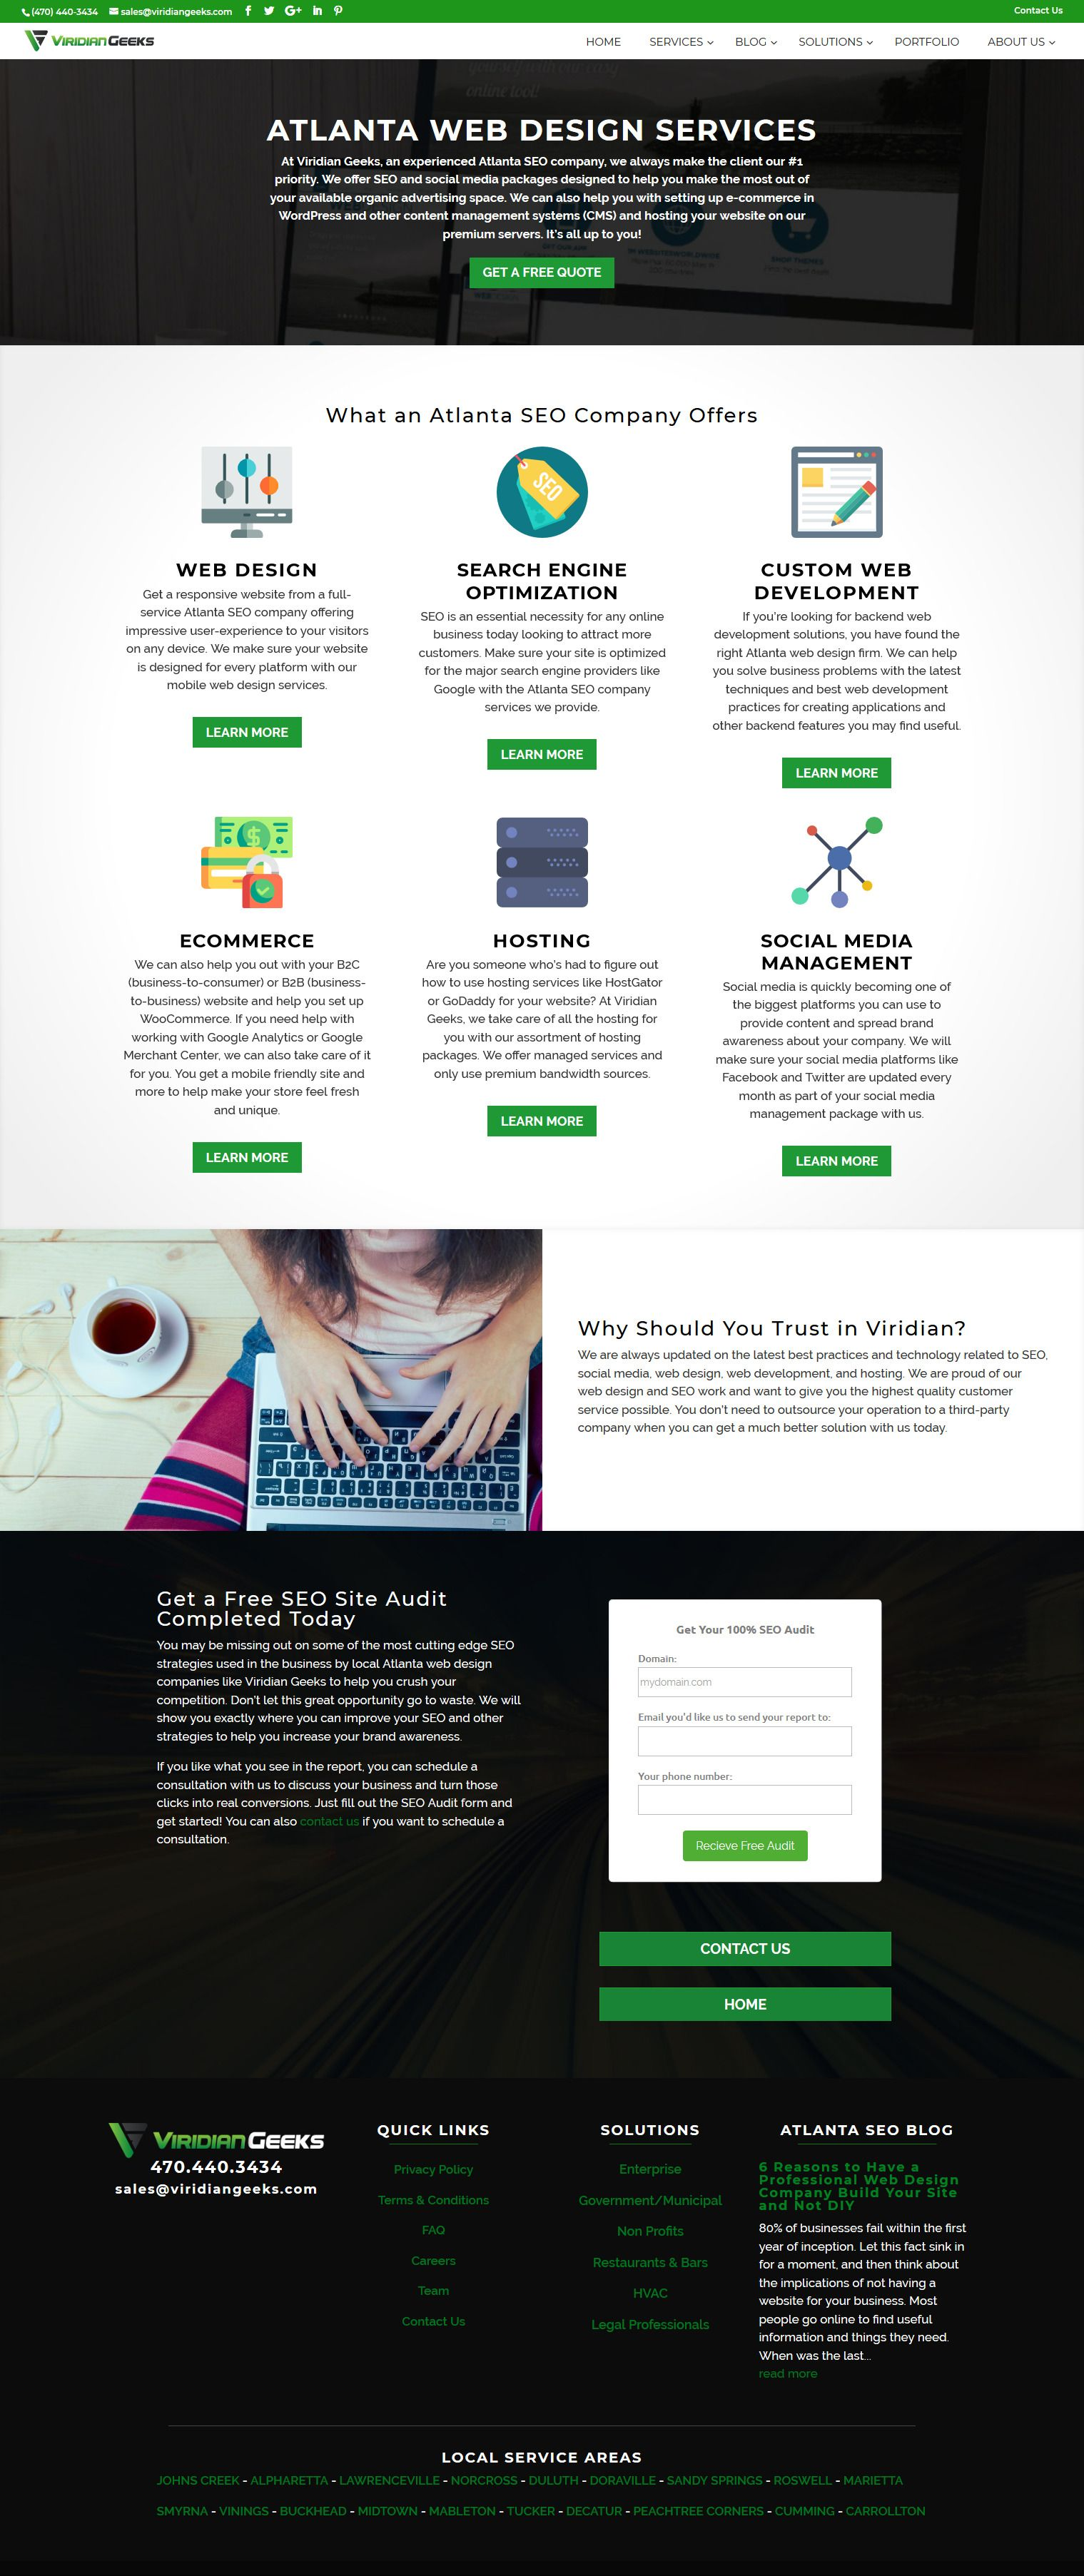 Waterfall Page Of Our Current Service Offerings Web Design Services Digital Marketing Solutions Web Design